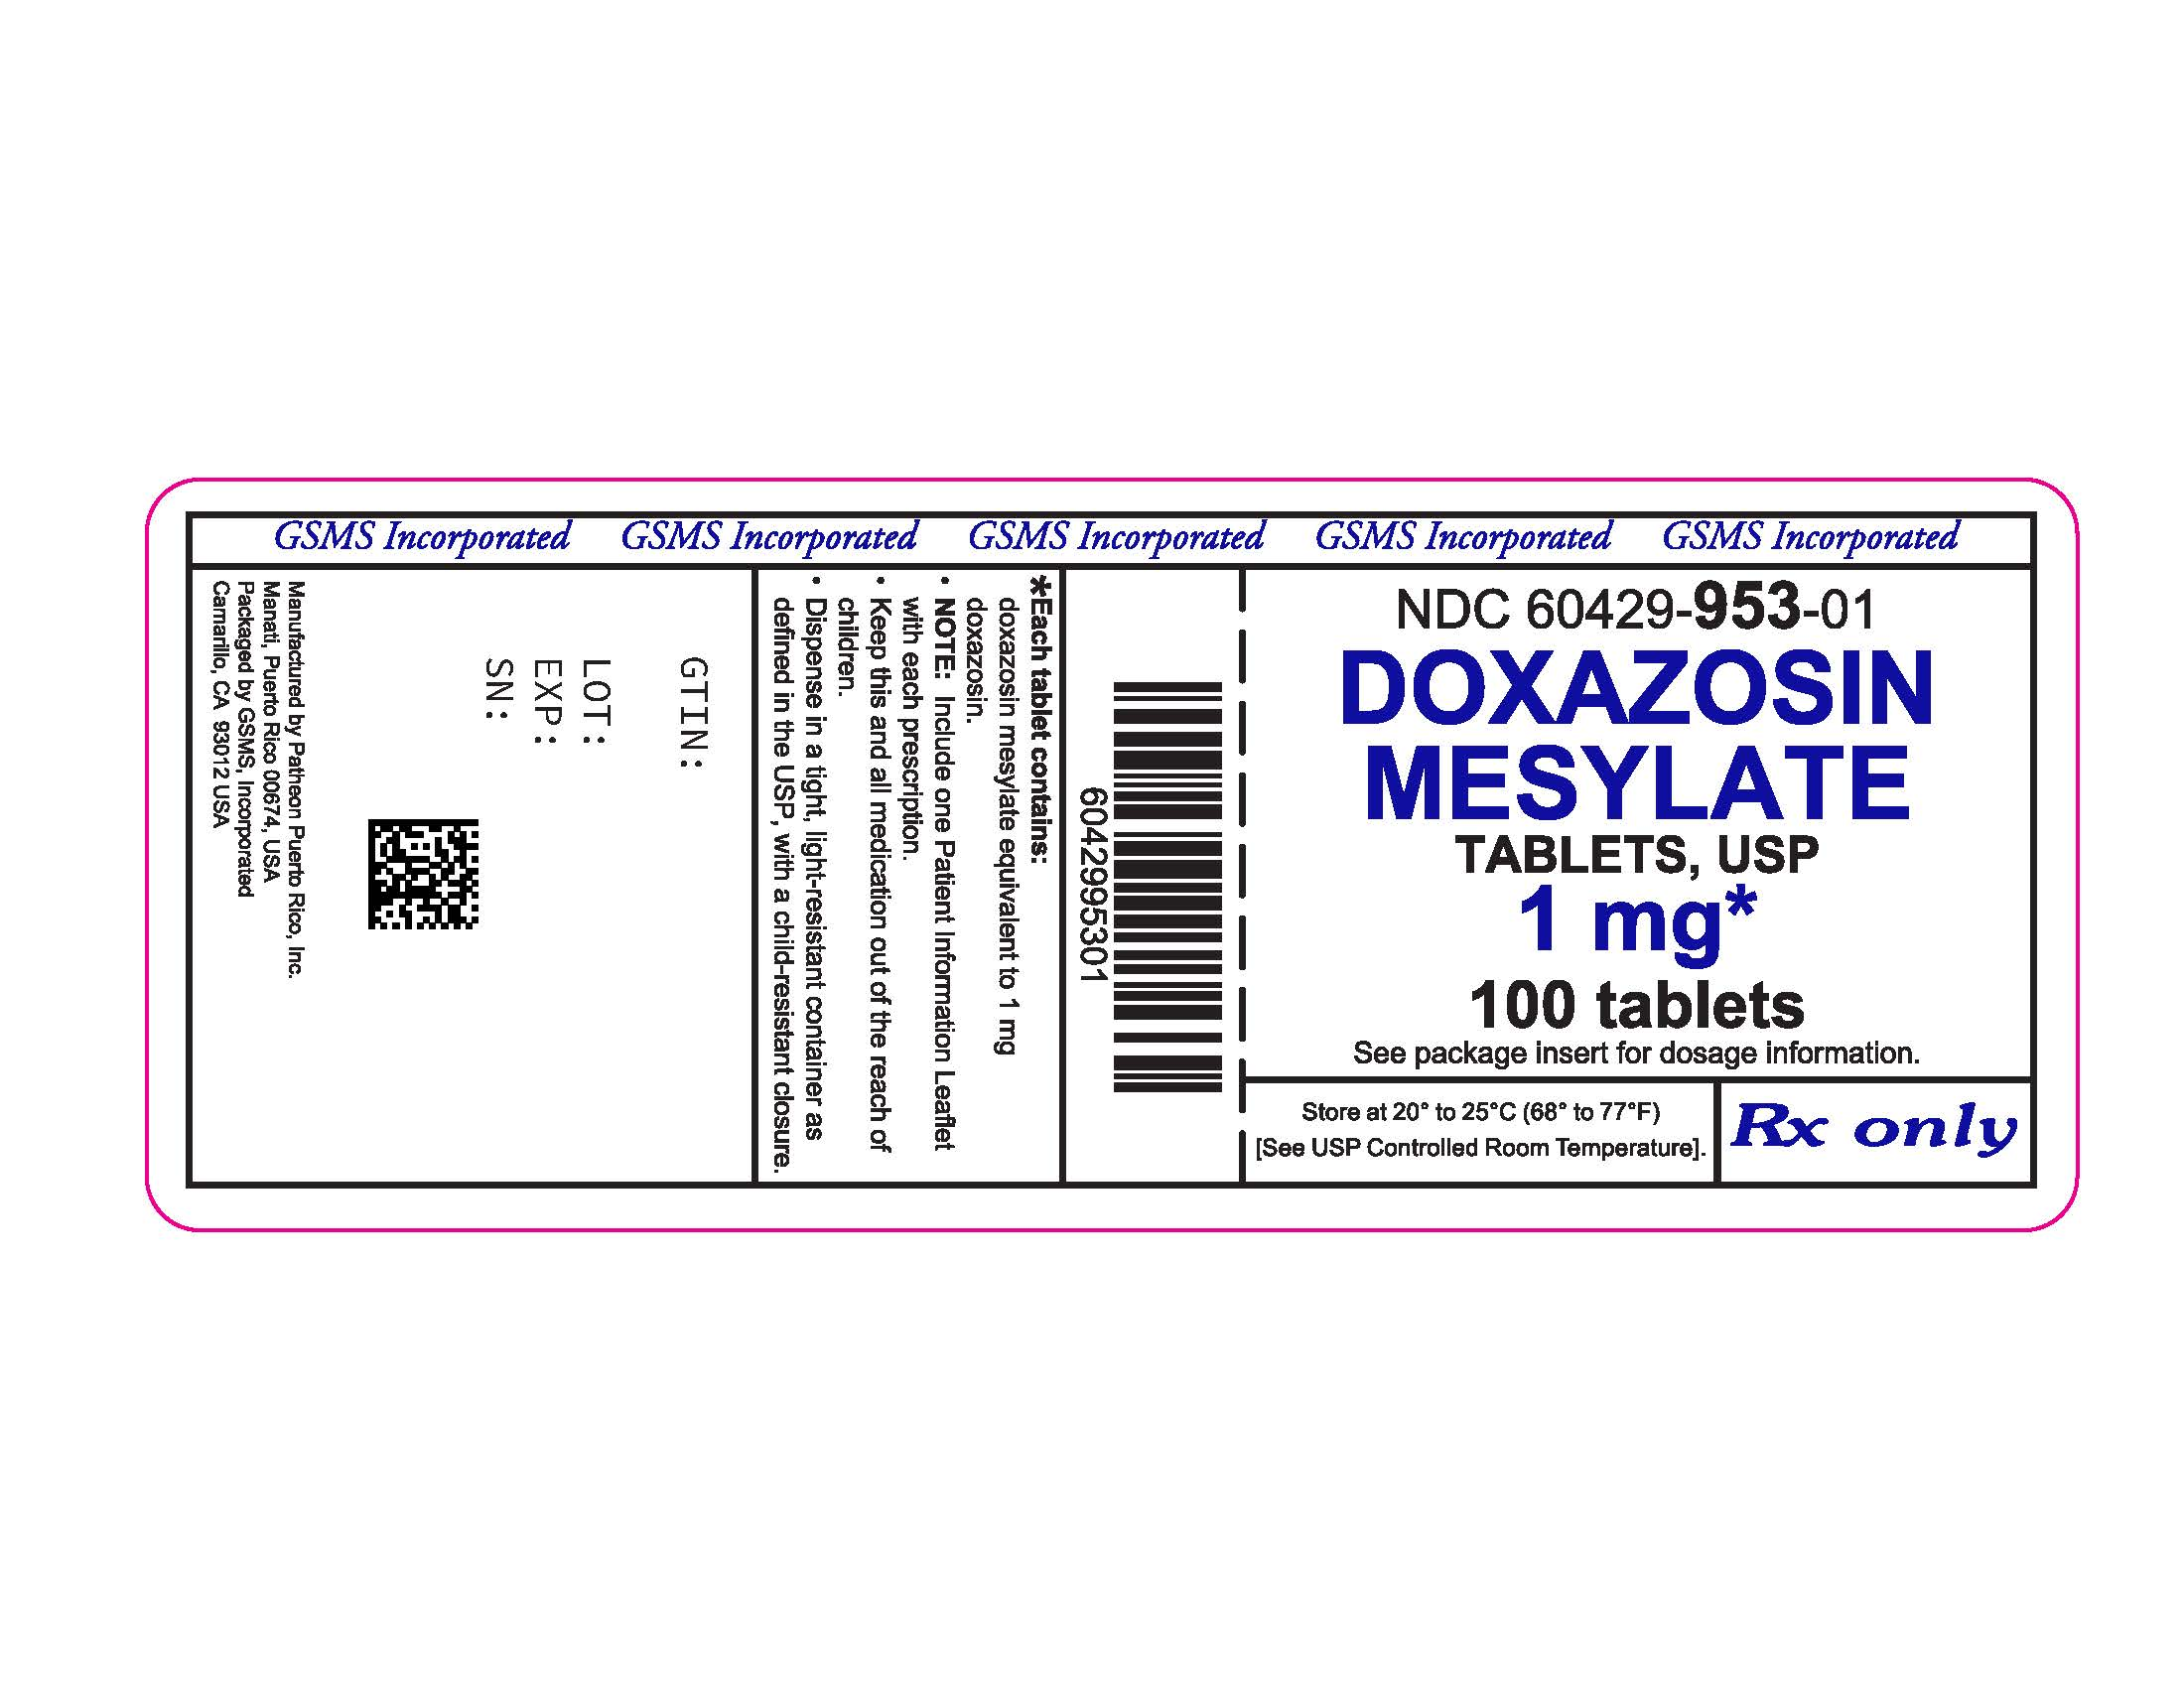 60429-953-01LB - DOXAZOSIN MESYLATE 1 MG TABS - REV JUN 2016 PMG JUN 2016.jpg